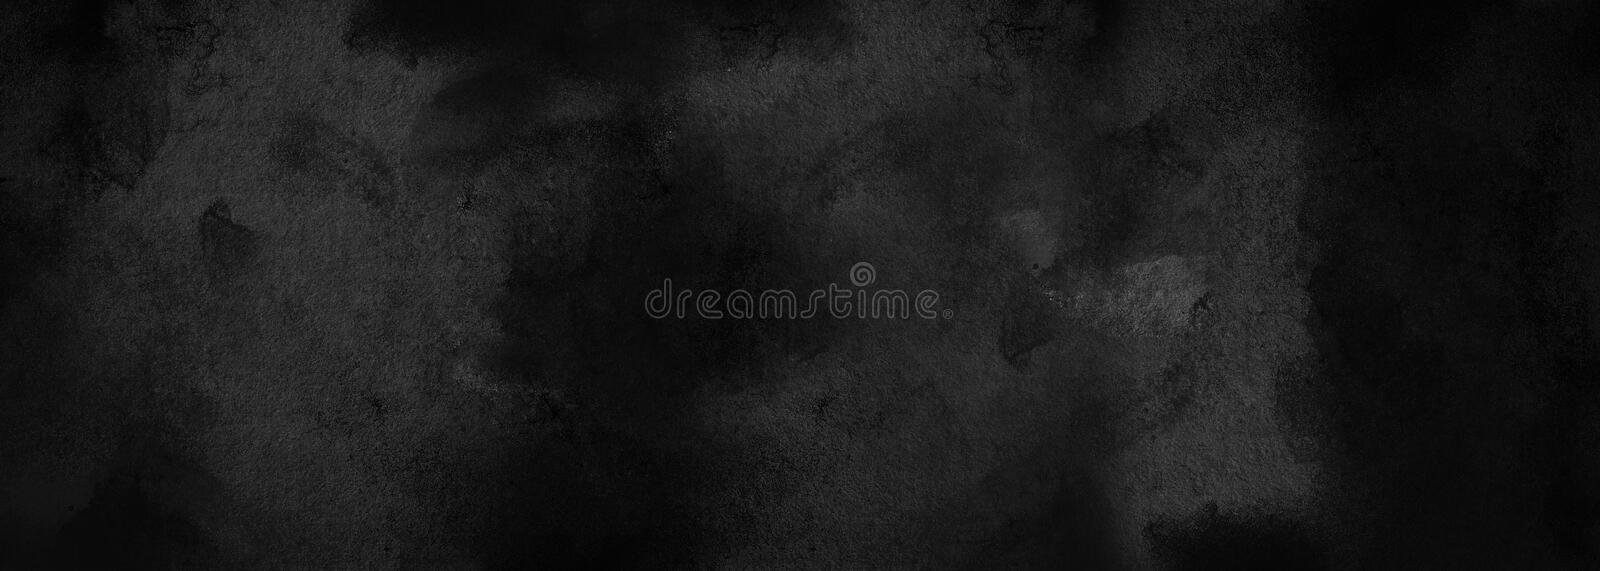 Black abstract shabby textured background texture of old paper. Blank background design banner effect scratches. Layout for design stock photo